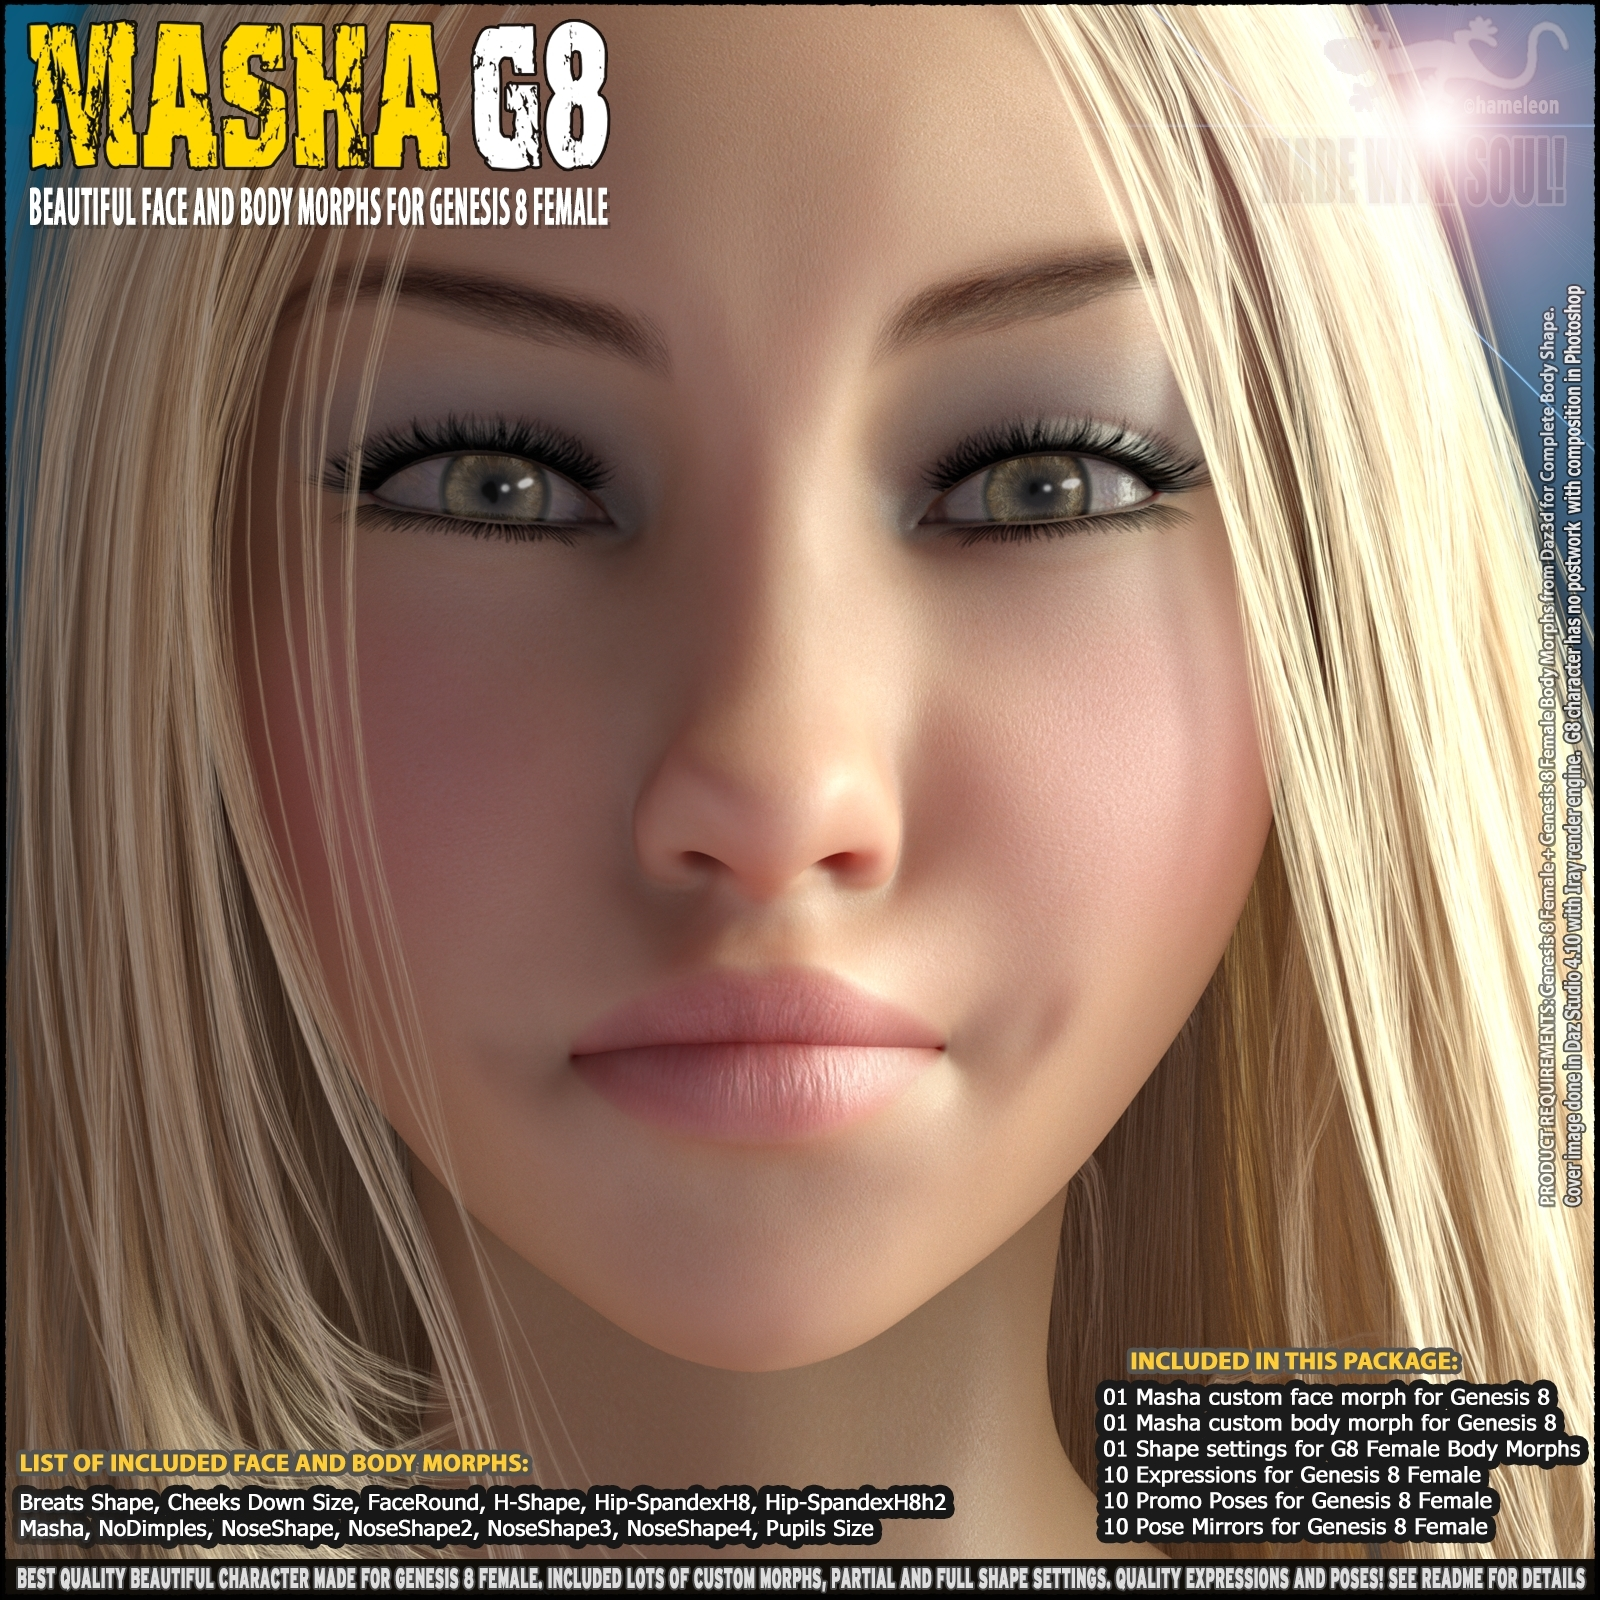 Masha - Beautiful Face and Body morphs for Genesis 8